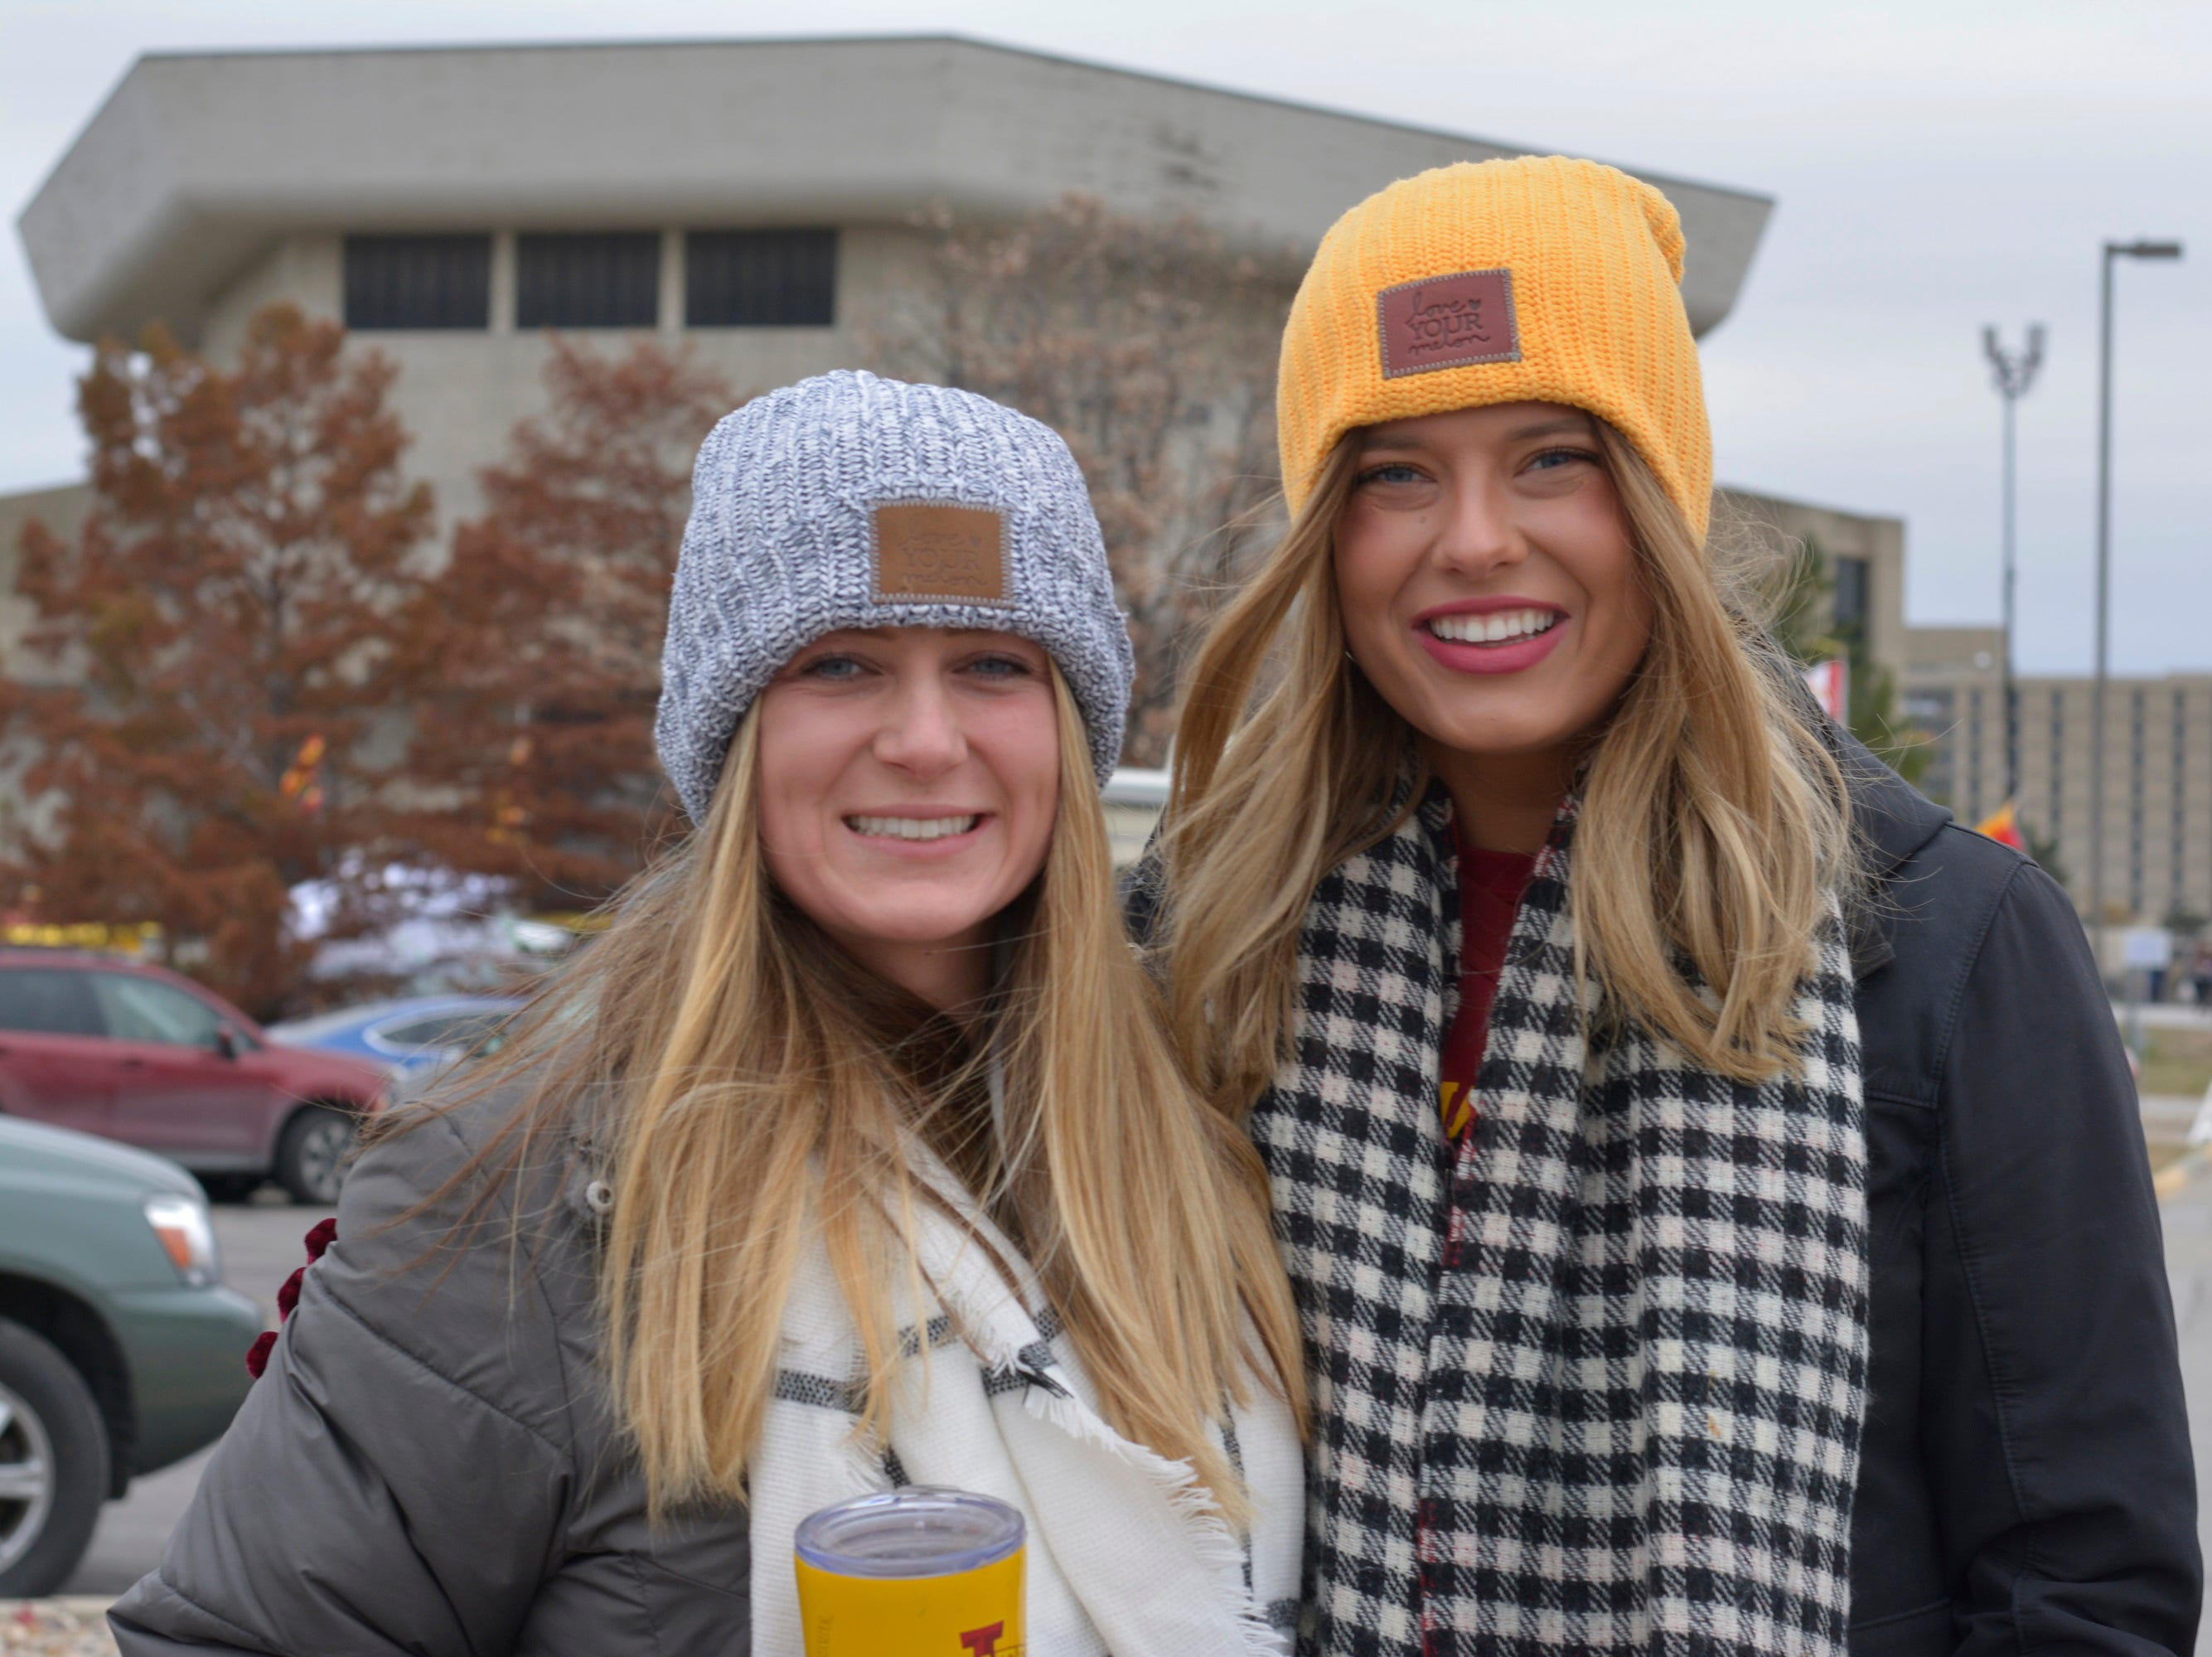 Valerie Feld (left) and Madelyn Jung (right) before the Iowa State University football game against Baylor in Ames on Nov. 10.